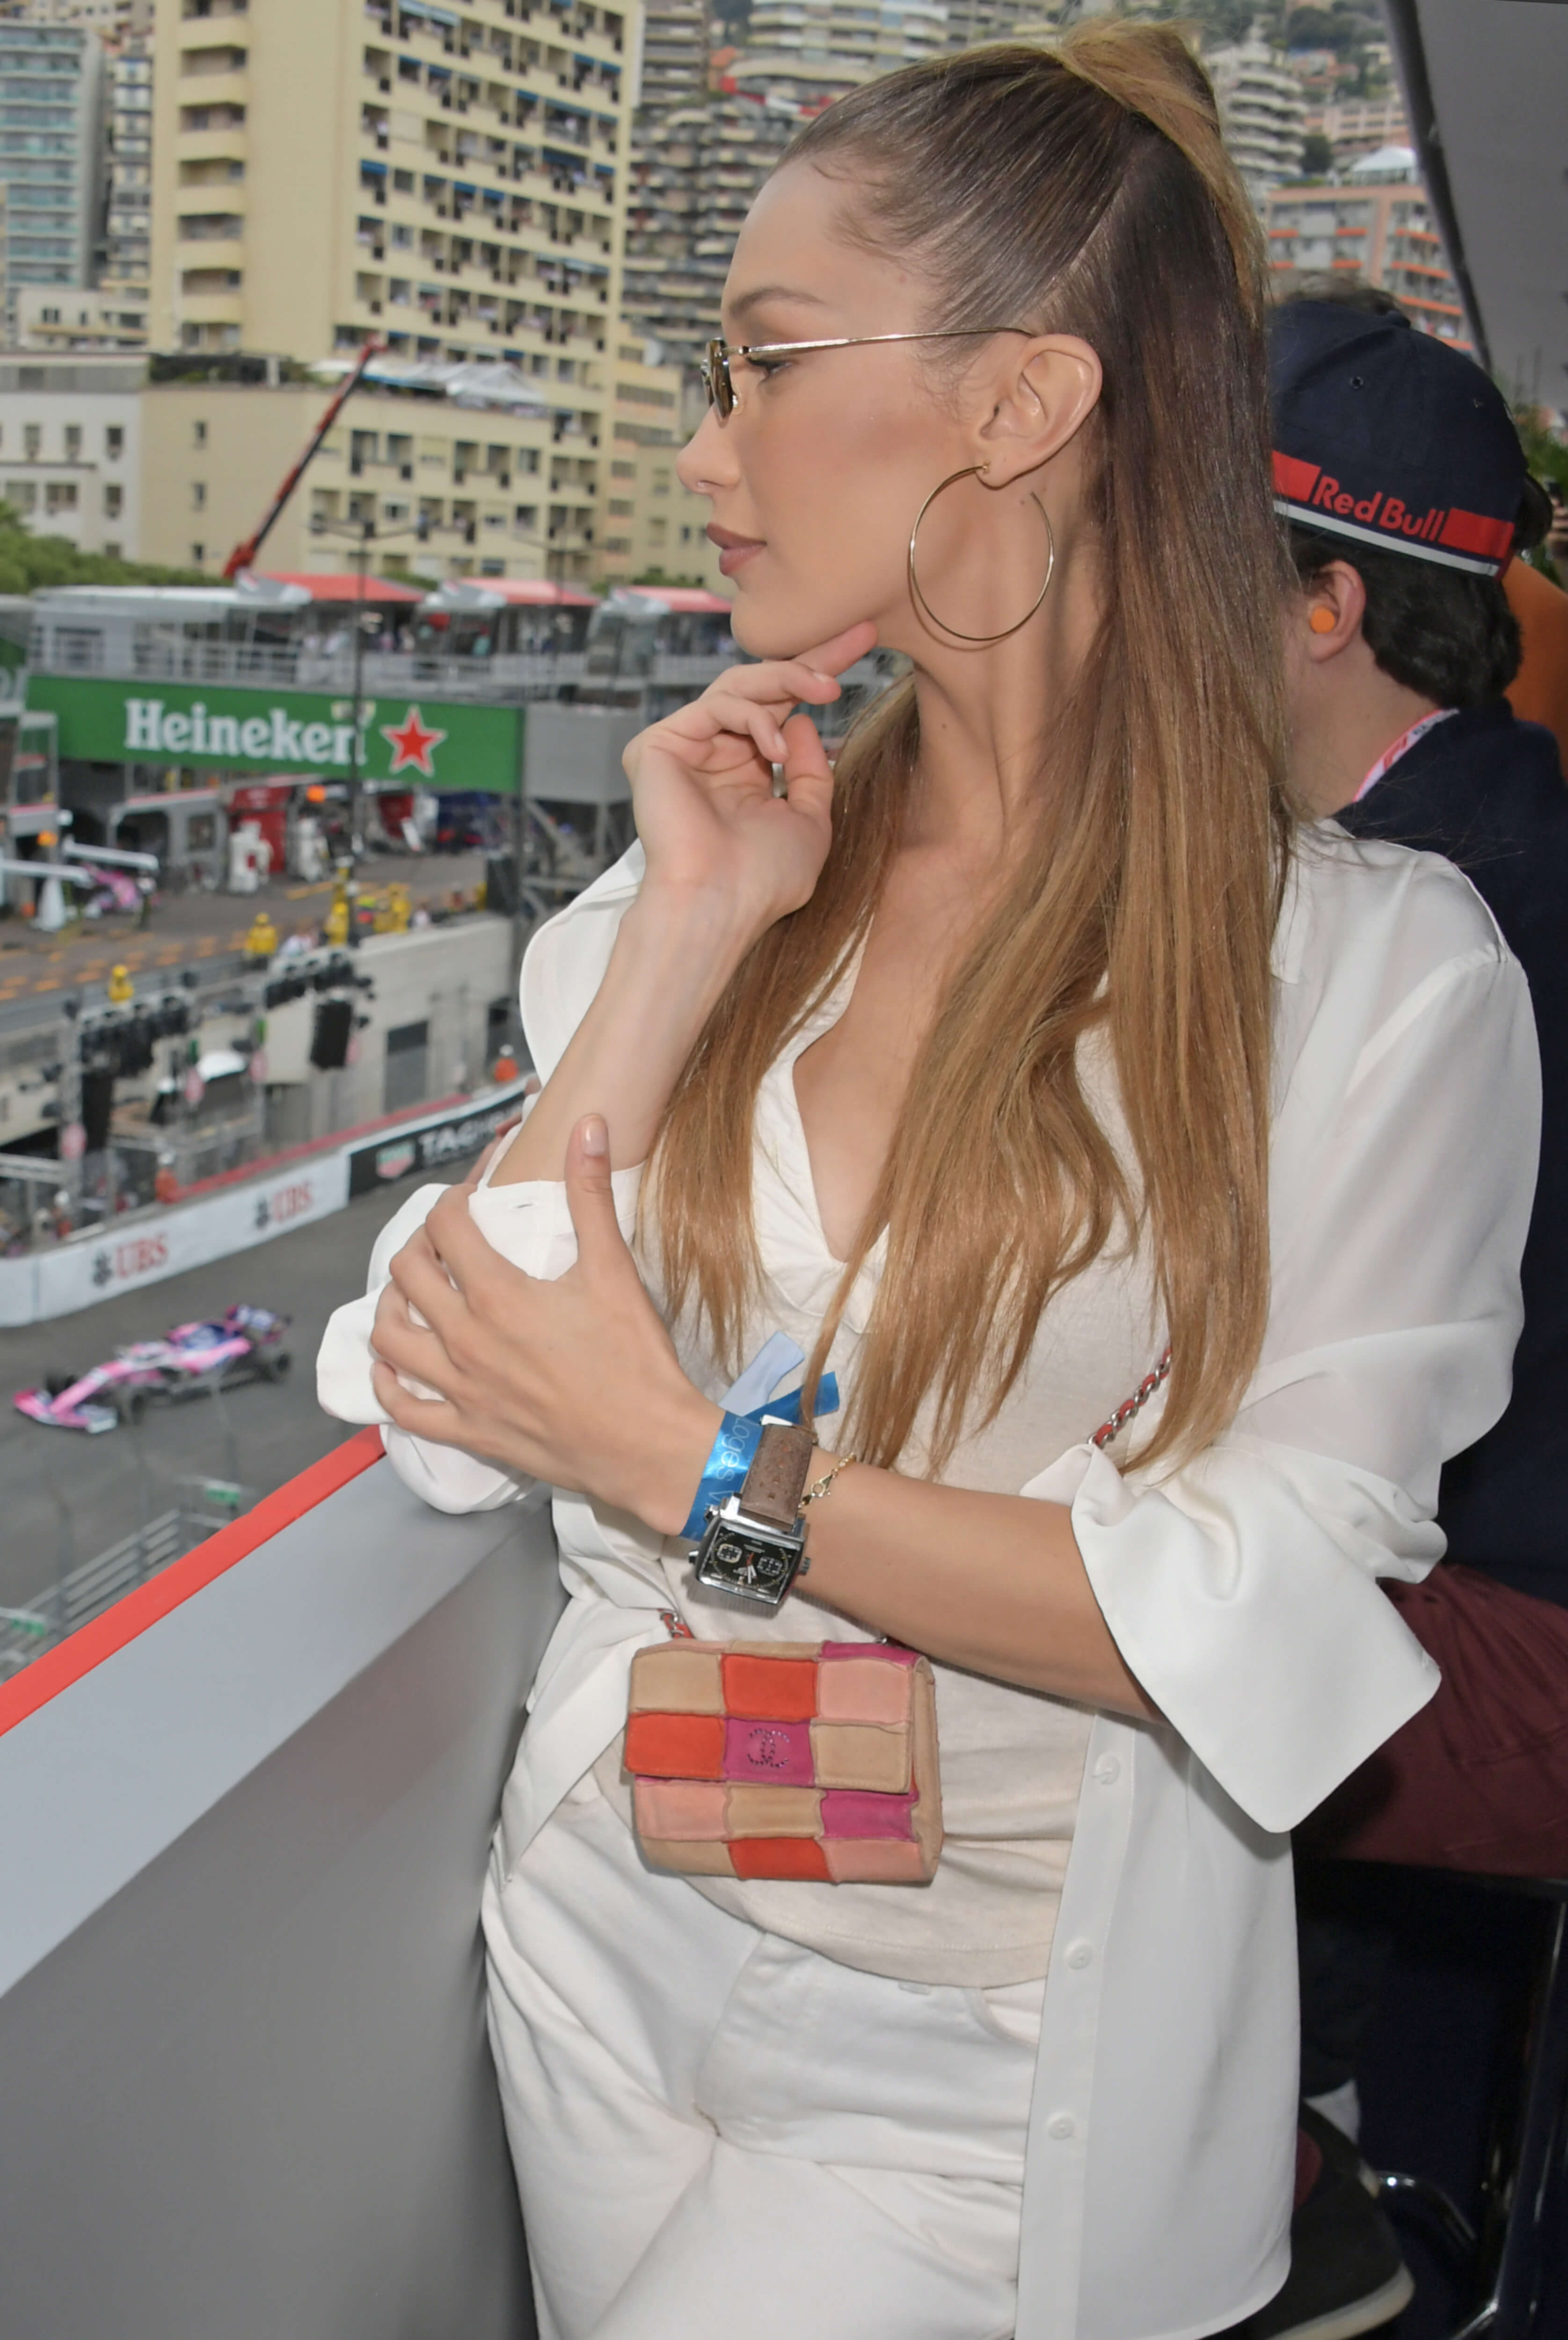 MONACO - MAY 26: Bella Hadid celebrates 50 Years of the Monaco Watch at the Formula 1 Grand Prix De Monaco, the legendary event that gave the watch its name in 1969, on May 26, 2019 in Monaco. (Photo by David M. Benett/Dave Benett/Getty Images for TAG Heuer)